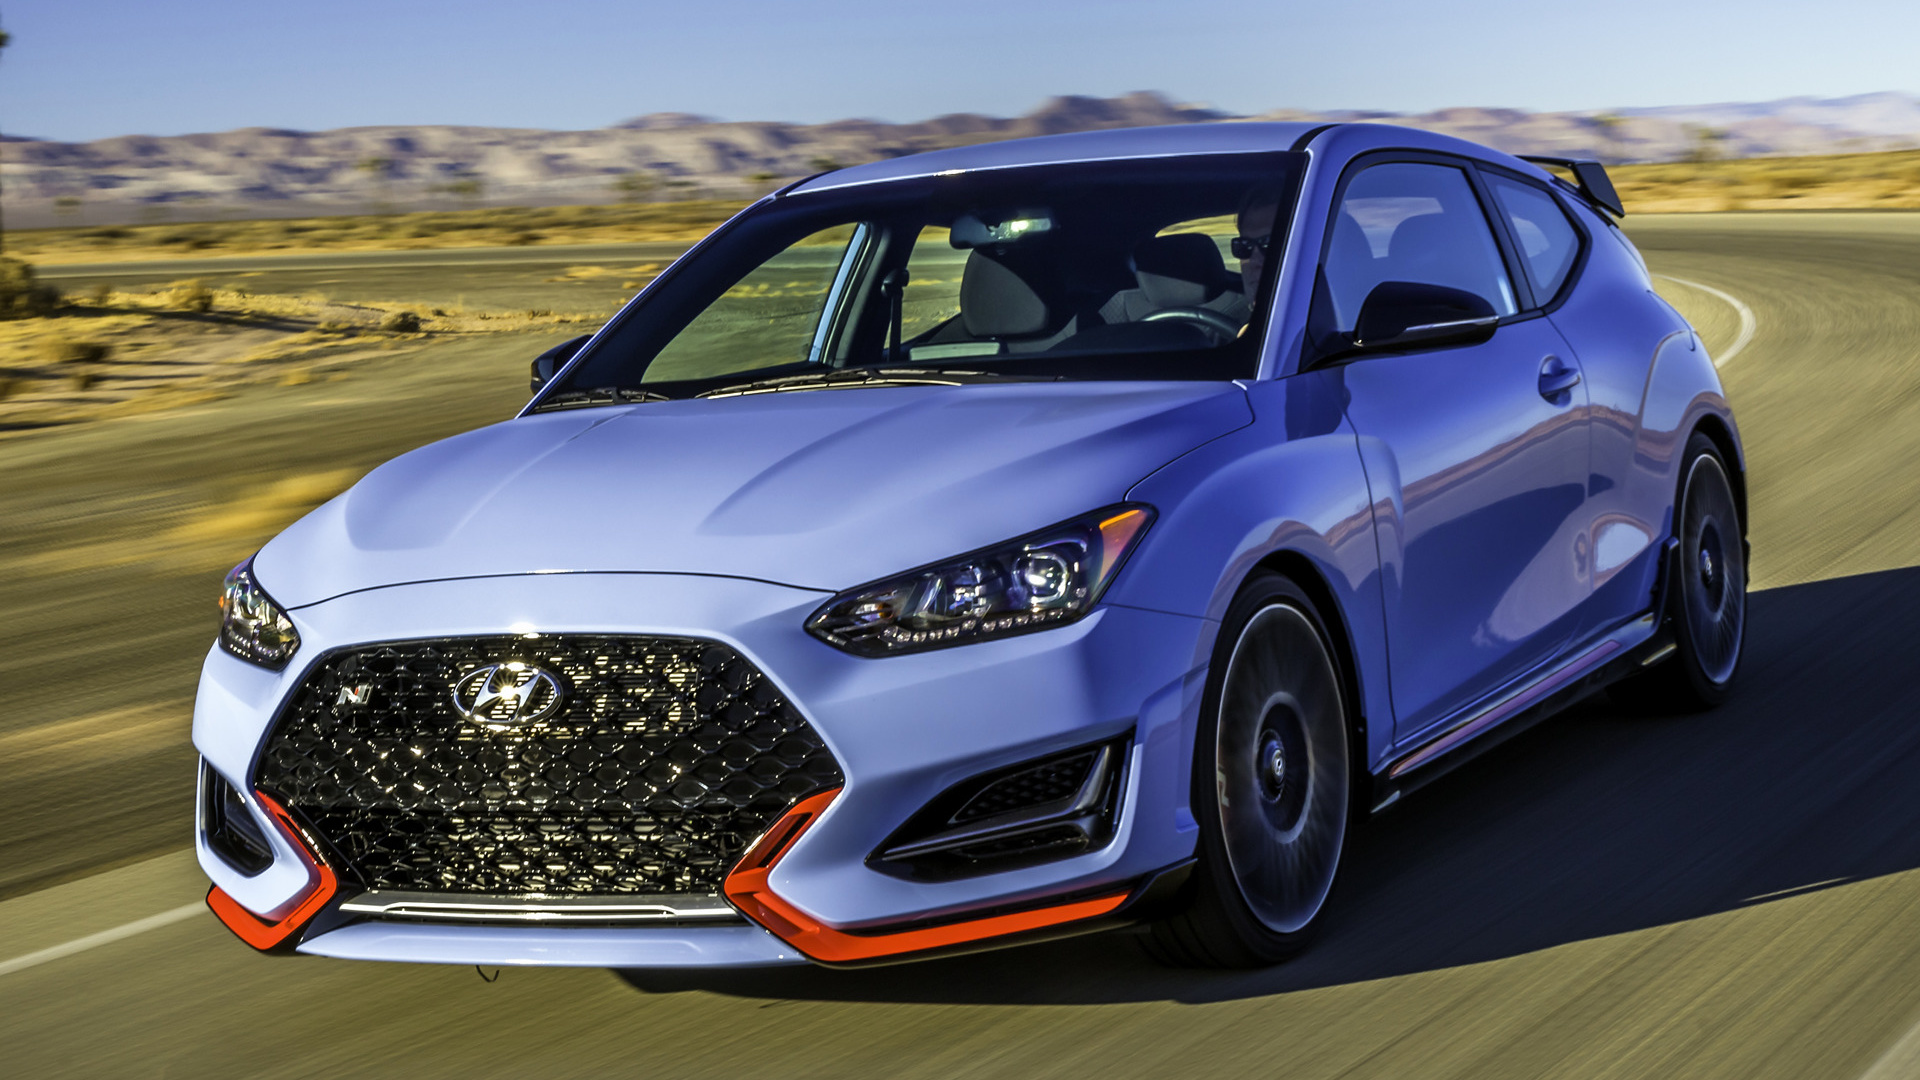 2019 Hyundai Veloster N US   Wallpapers and HD Images Car Pixel 1920x1080